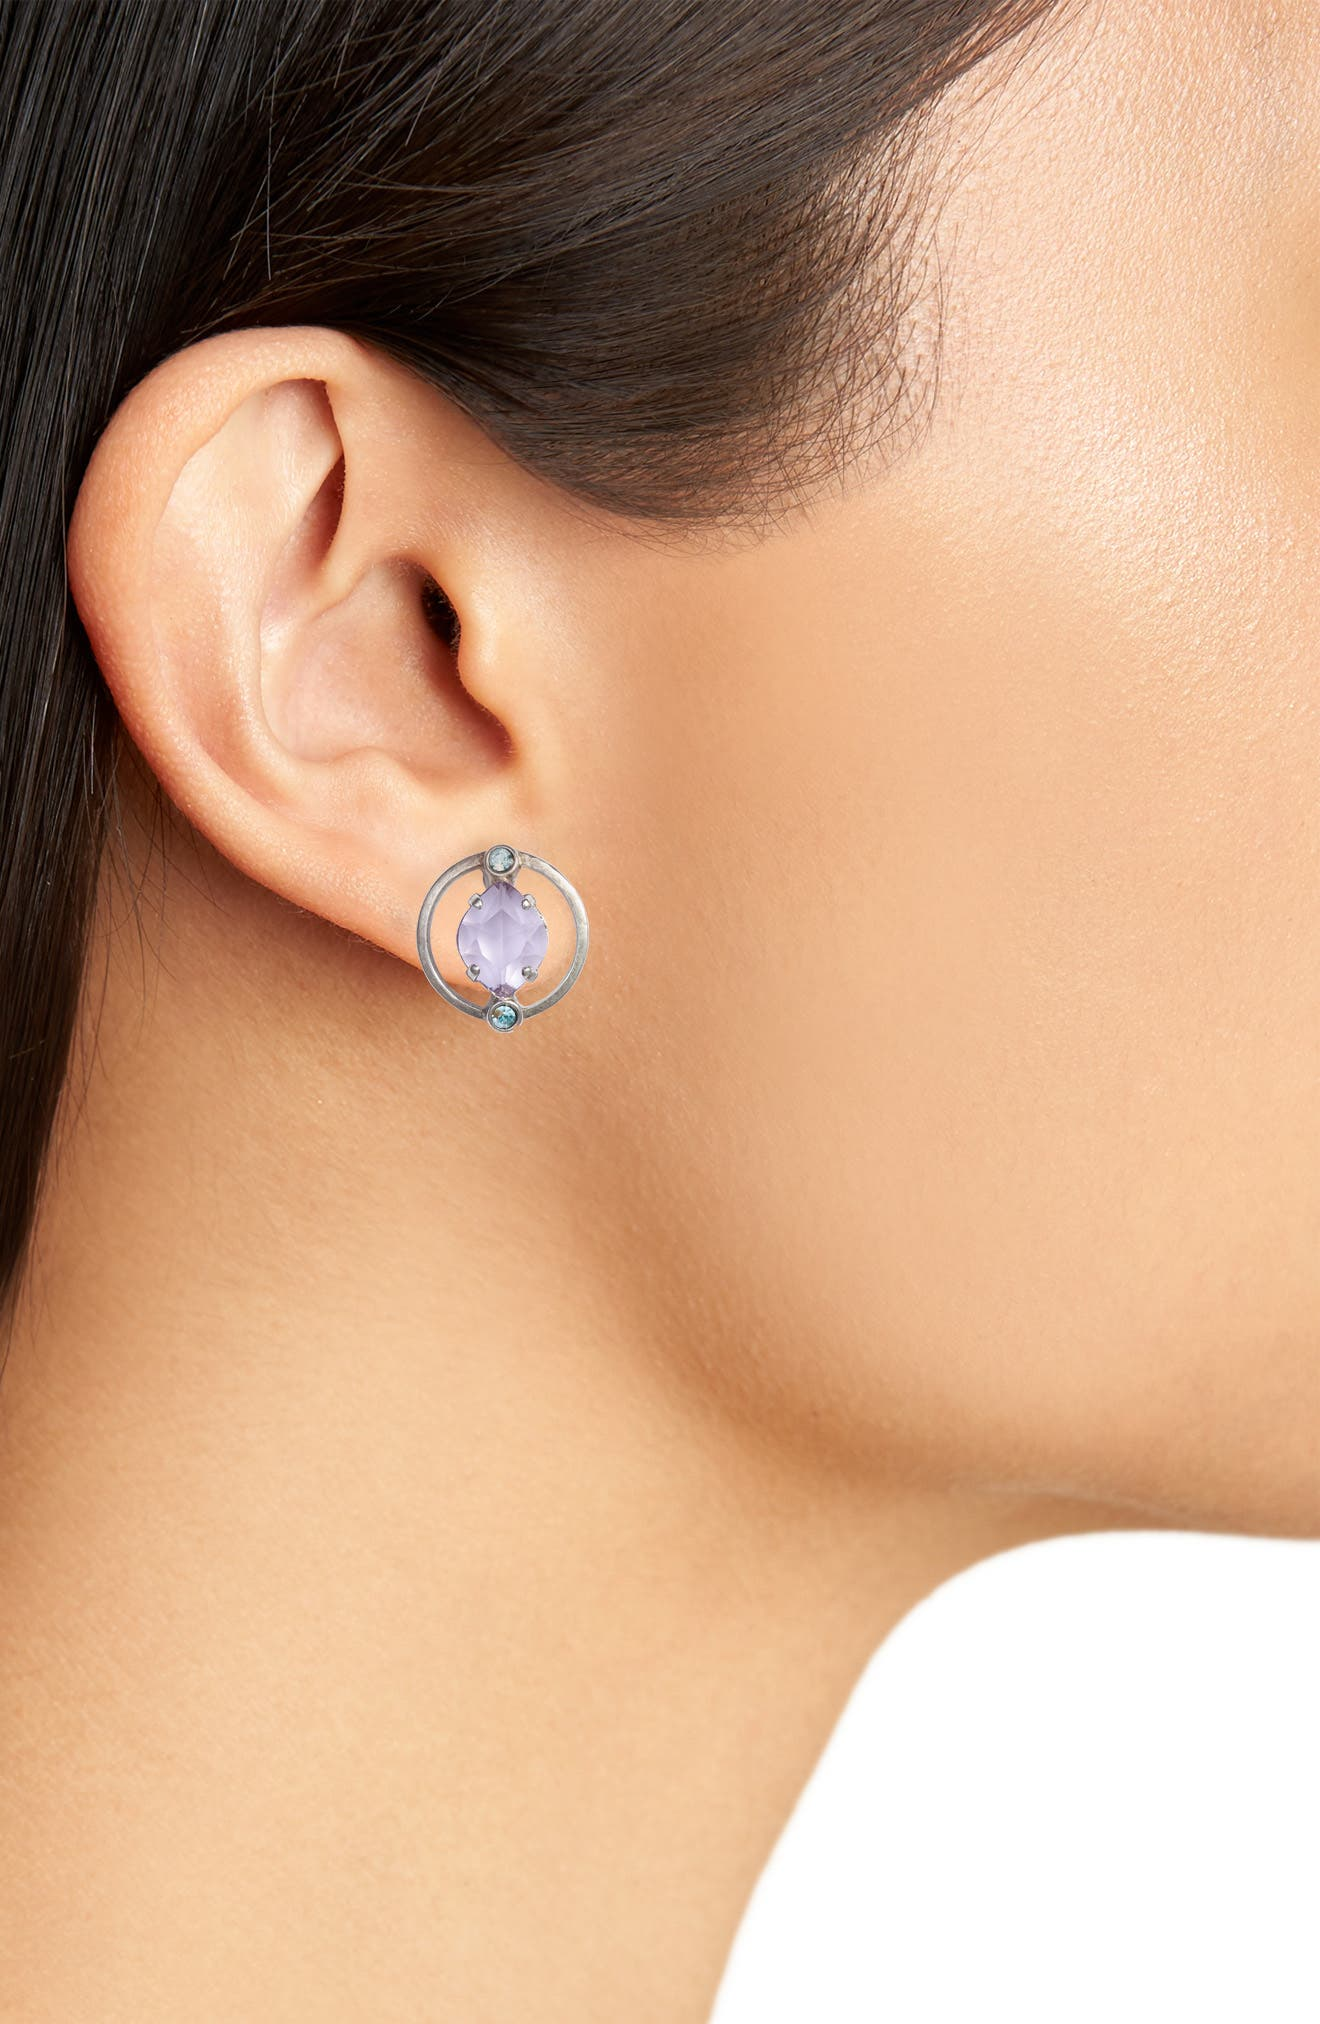 Tiger Lily Crystal Earrings,                             Alternate thumbnail 2, color,                             PURPLE